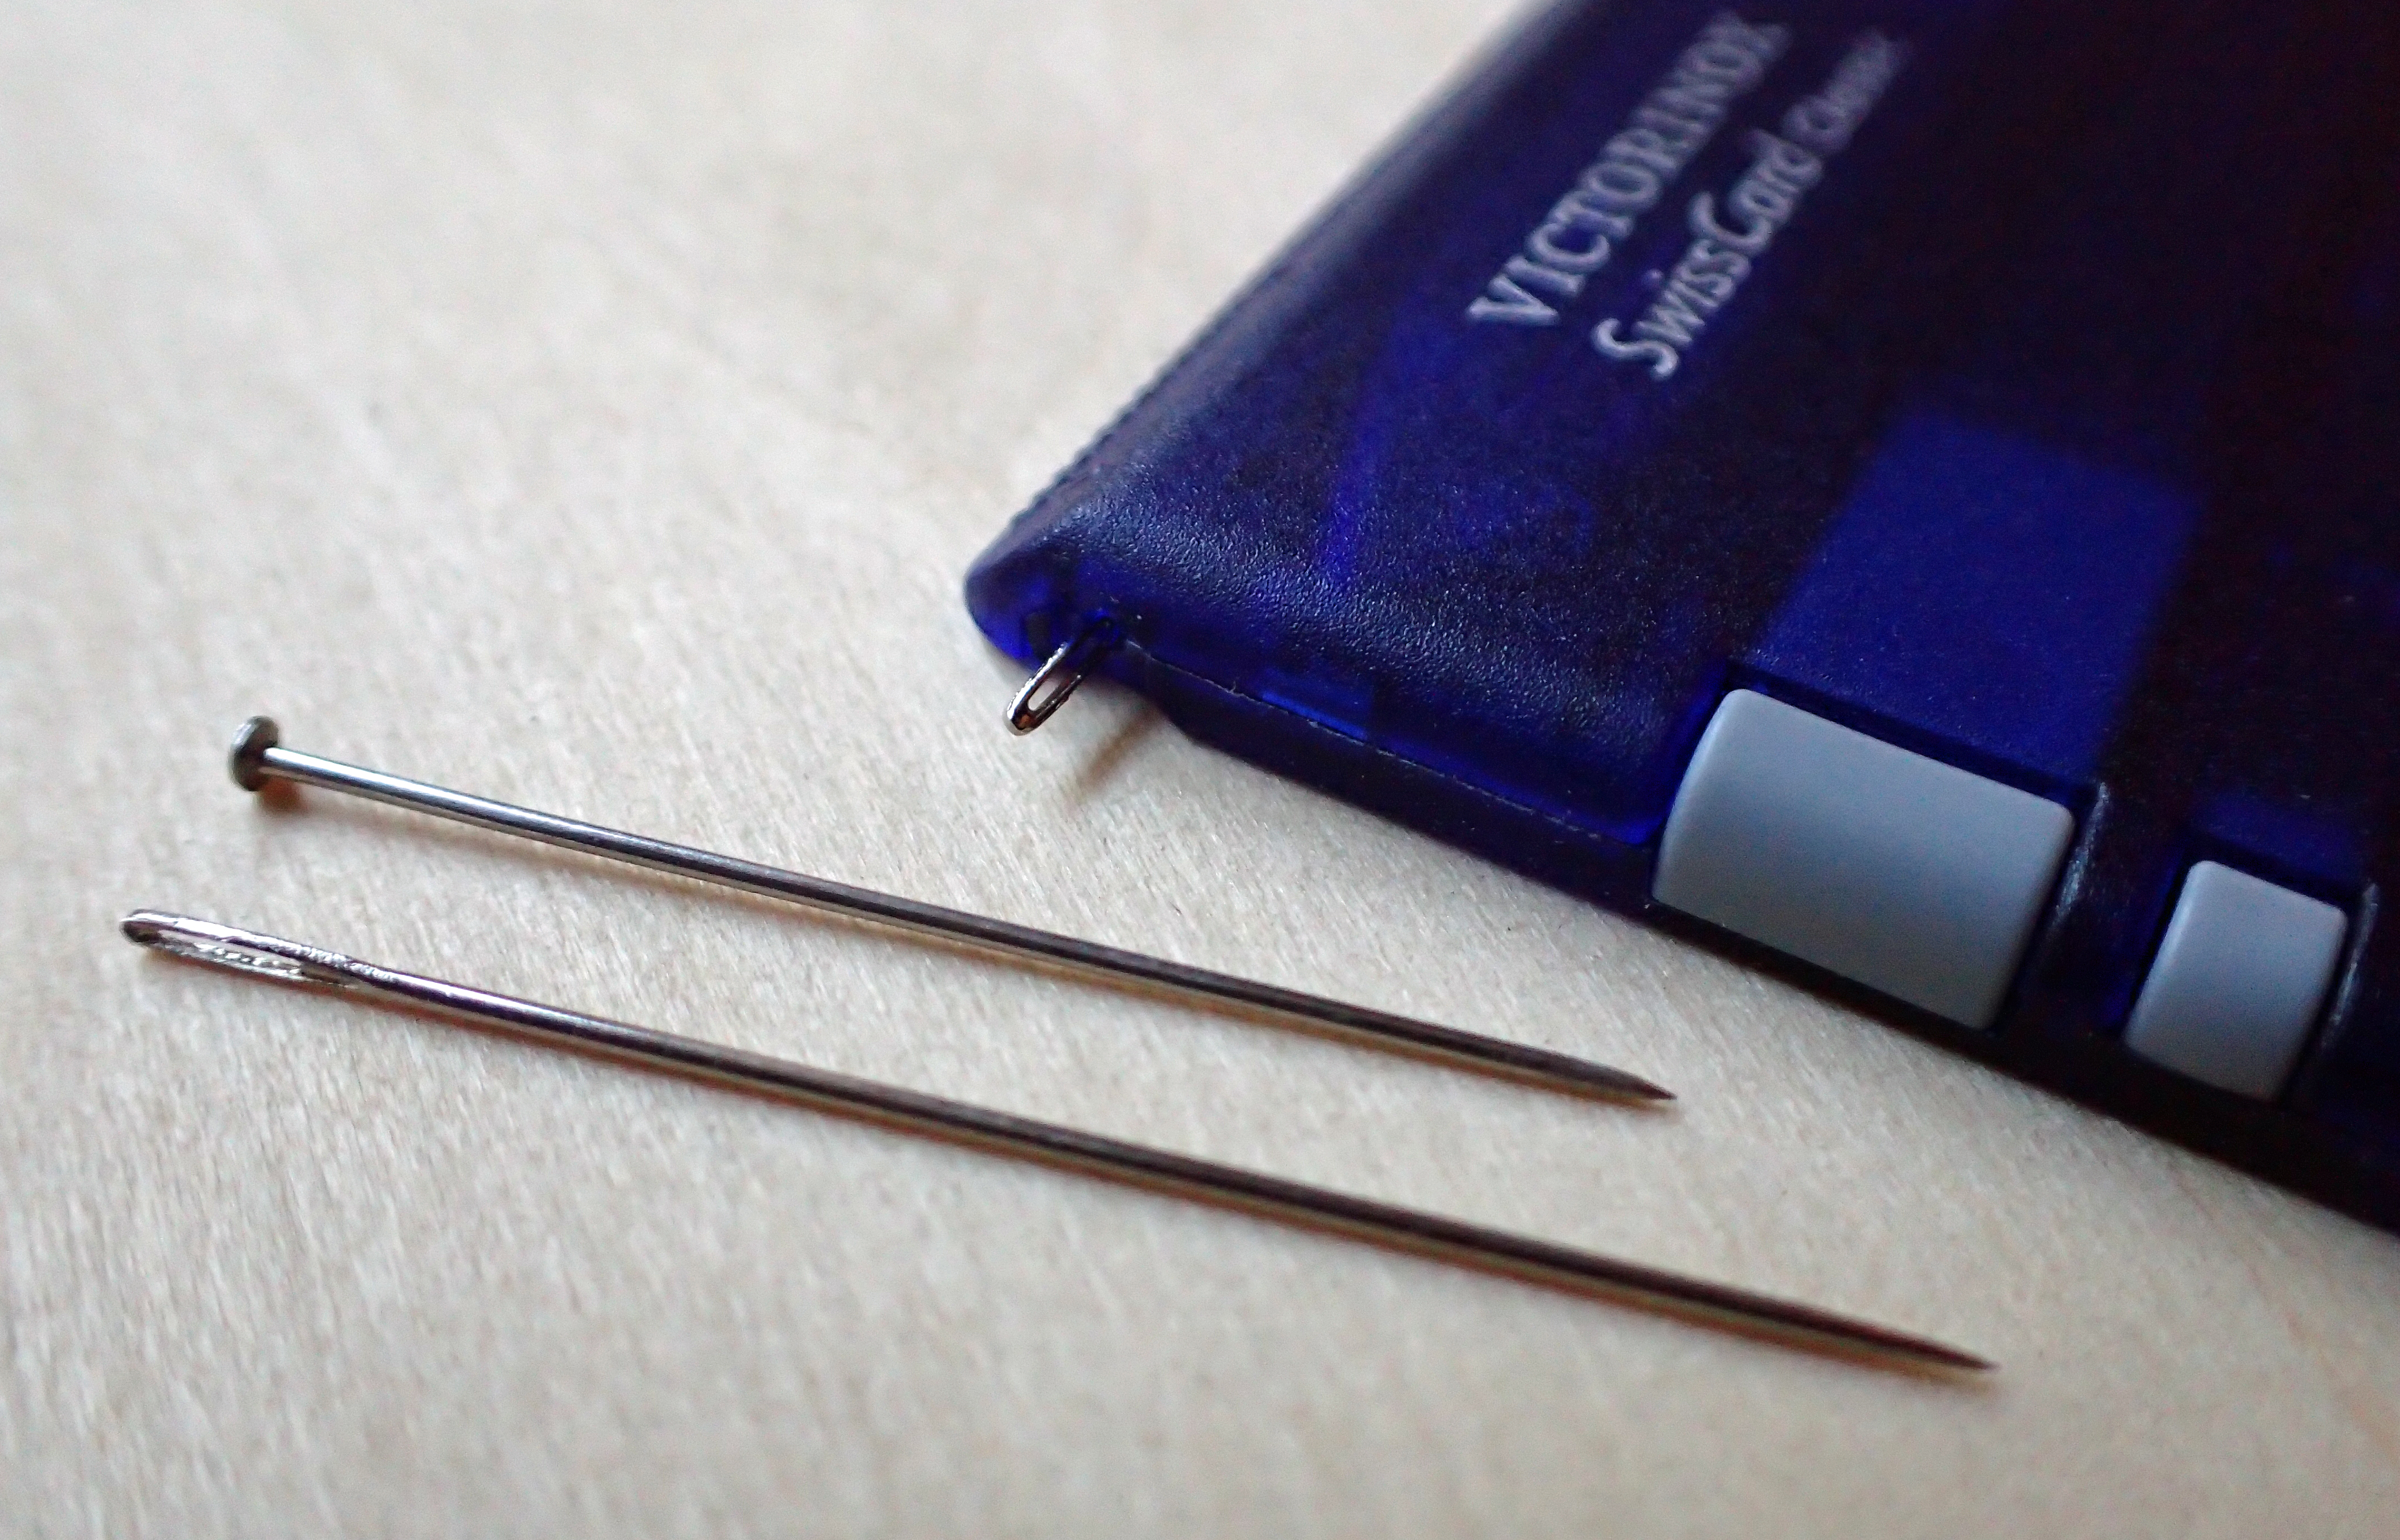 One option with a SwissCard is to replace the pin with a needle. This replacement is a Size 7 embroidery/crewel needle